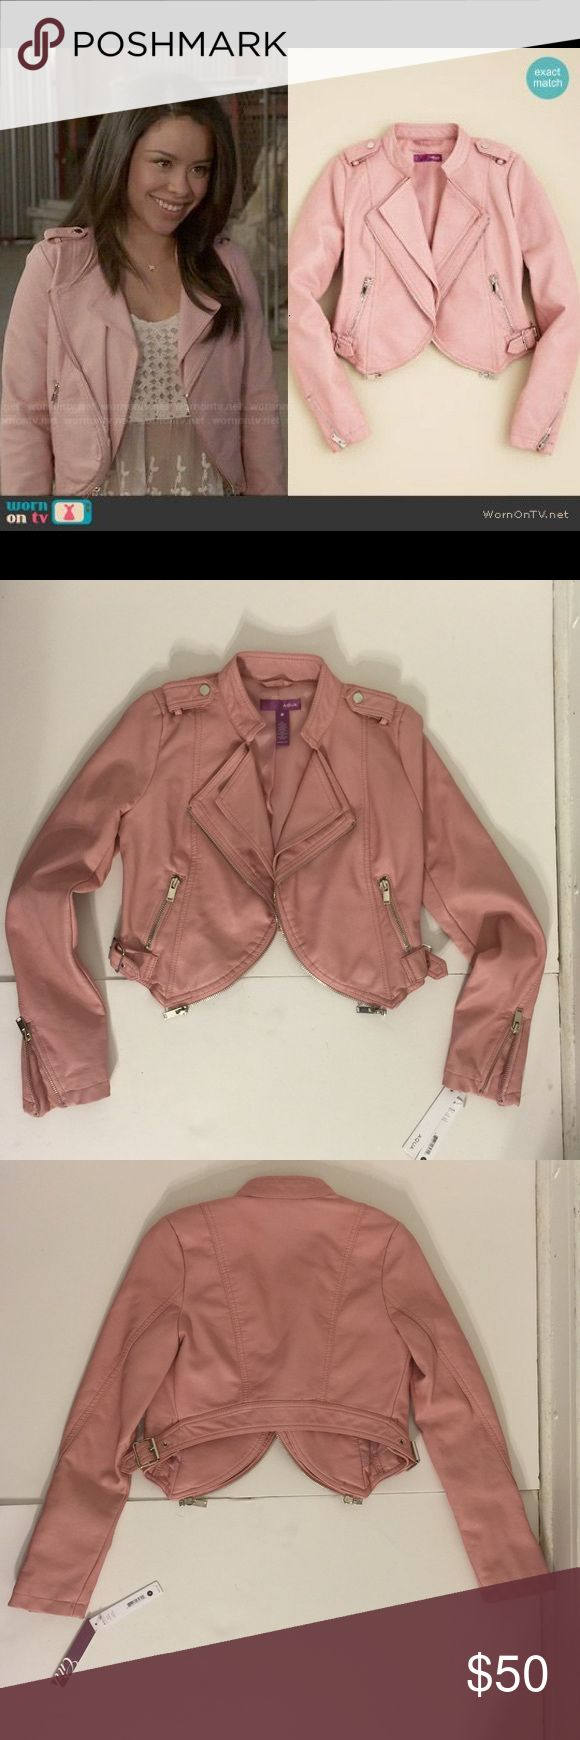 6-6x girls NWT Aqua (Brand) Faux Leather Jacket. NWT Aqua (brand not color) Girls/kids Faux Leather Moto Jacket in Peony Pink. Size Small. According to Aqua's size chart a small should fit : 6-6x. For more specific size information please see the size chart for Aqua girls on Bloomingdales.com. Also, please note that the jacket was not designed to zip closed. I wish this jacket would fit me. :) It's adorable! (Never worn) Aqua Jackets & Coats